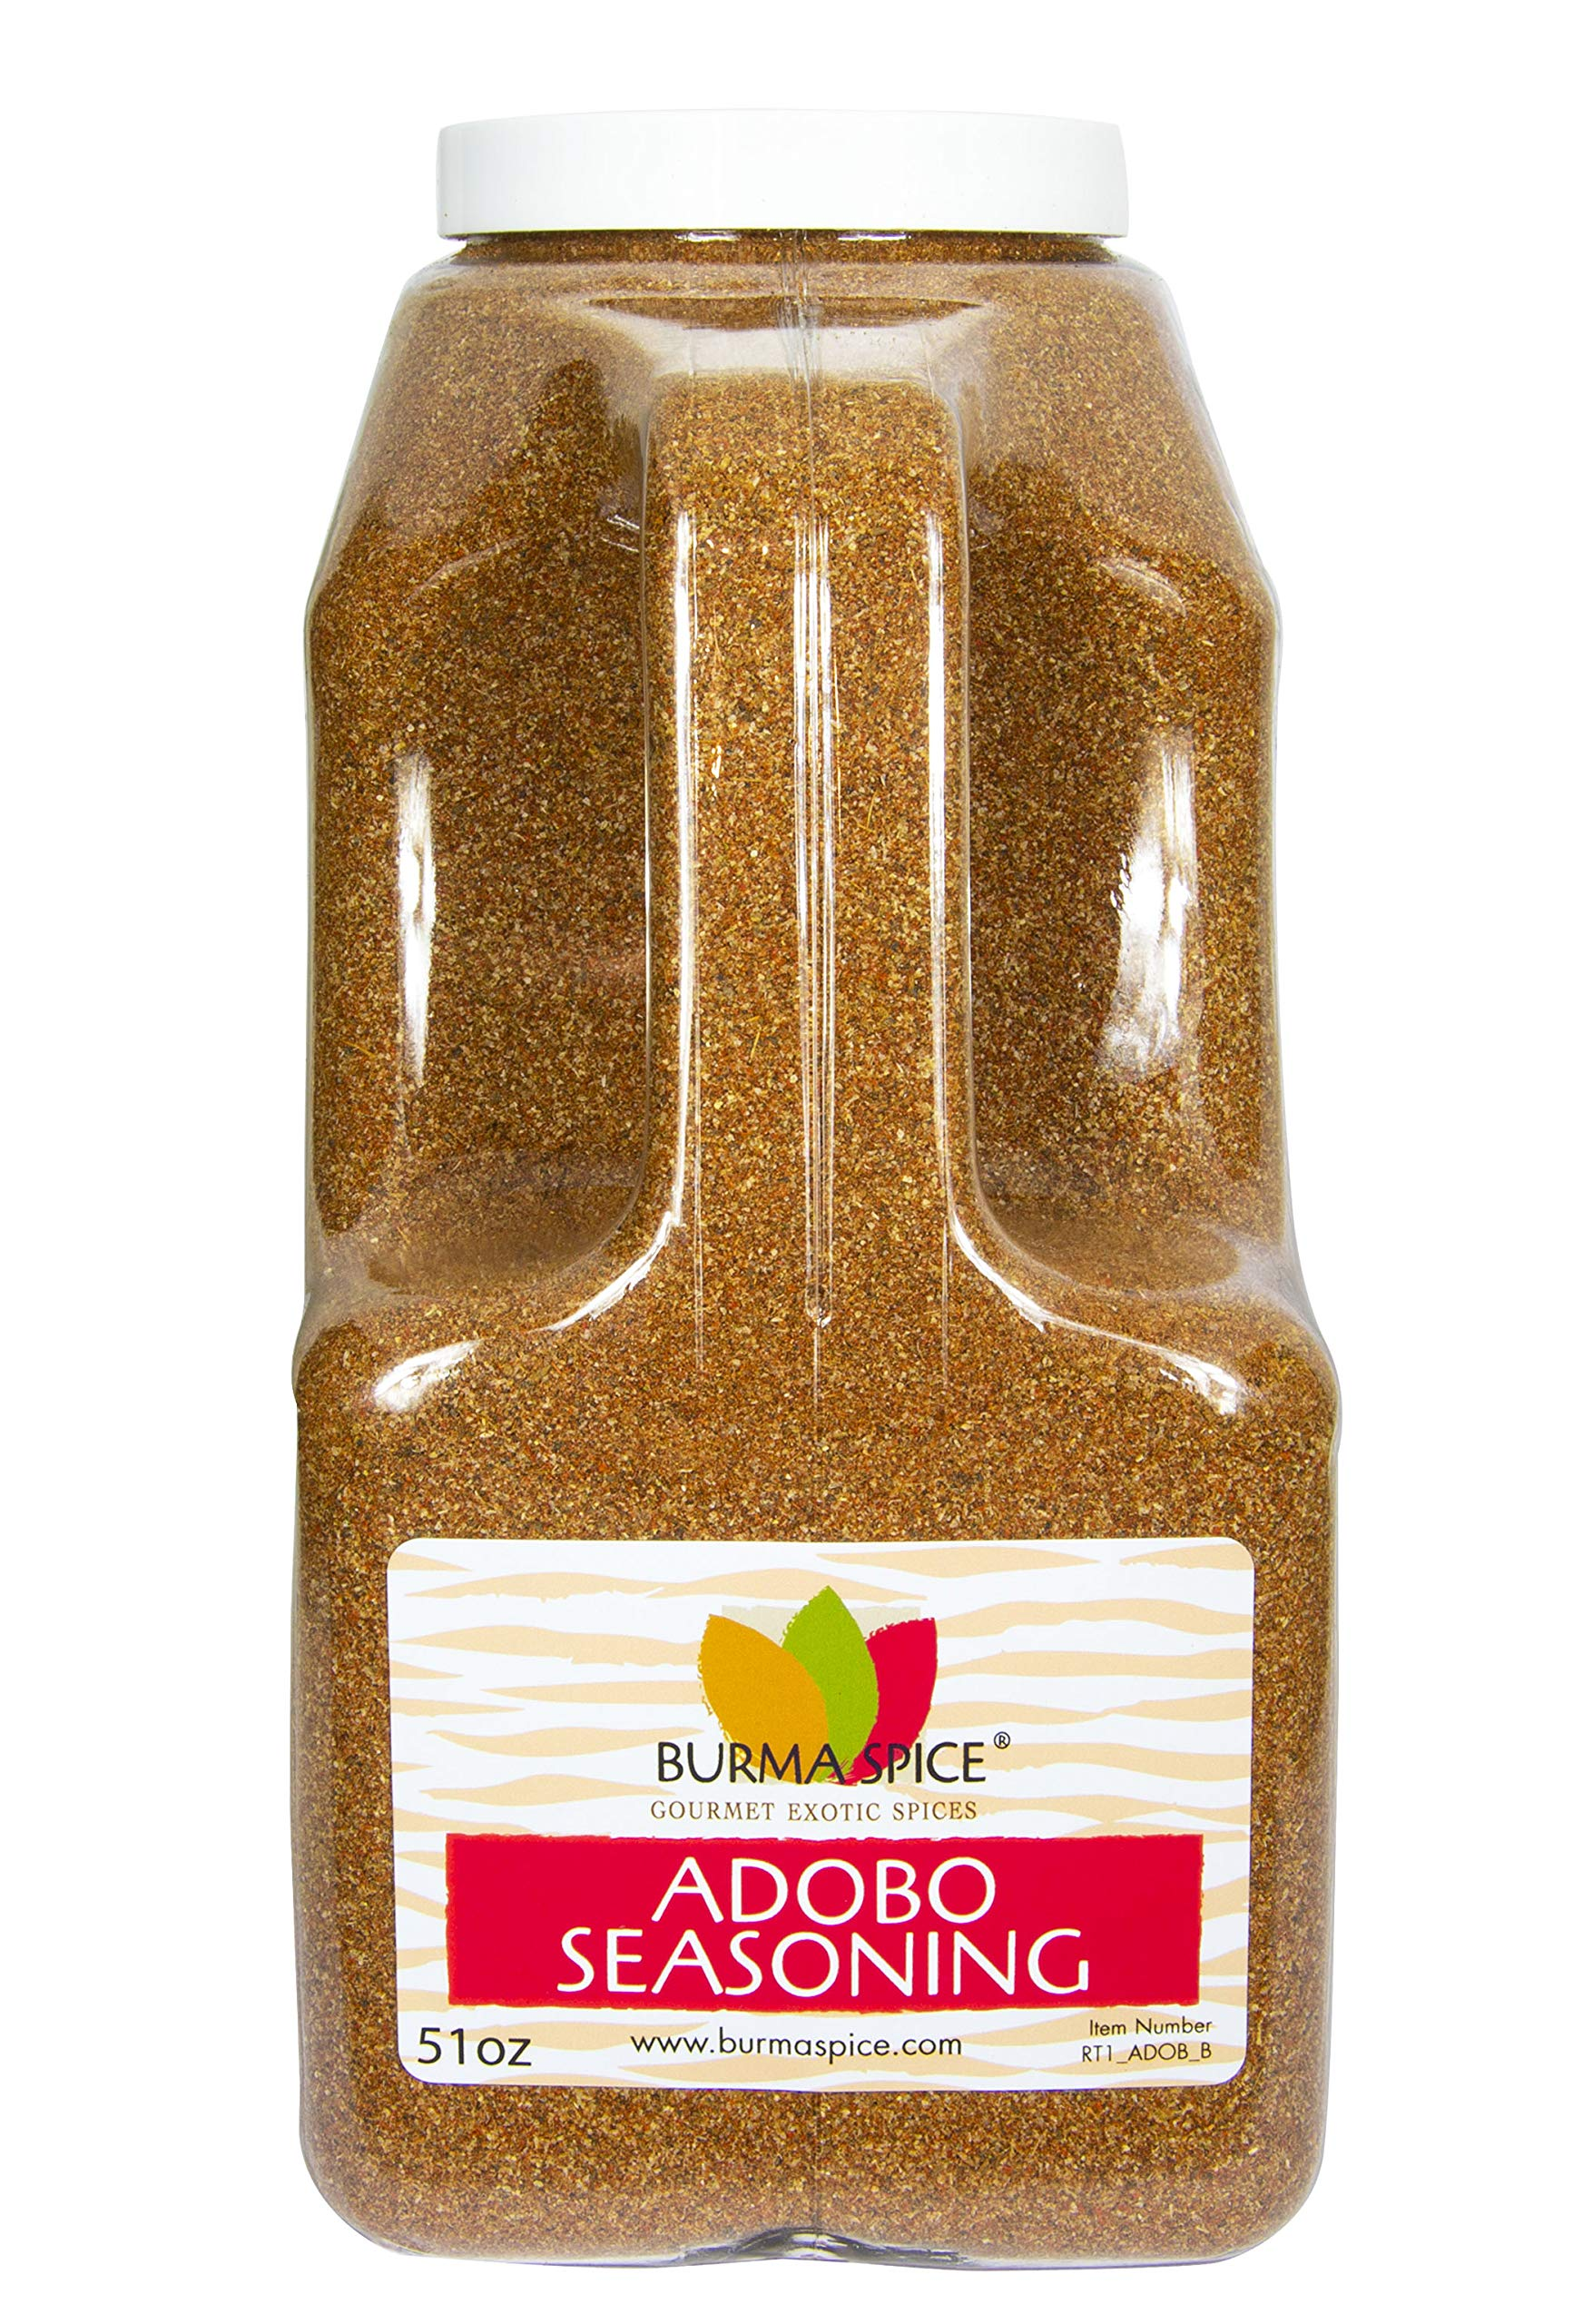 Adobo Seasoning Spice Blend (51oz.)